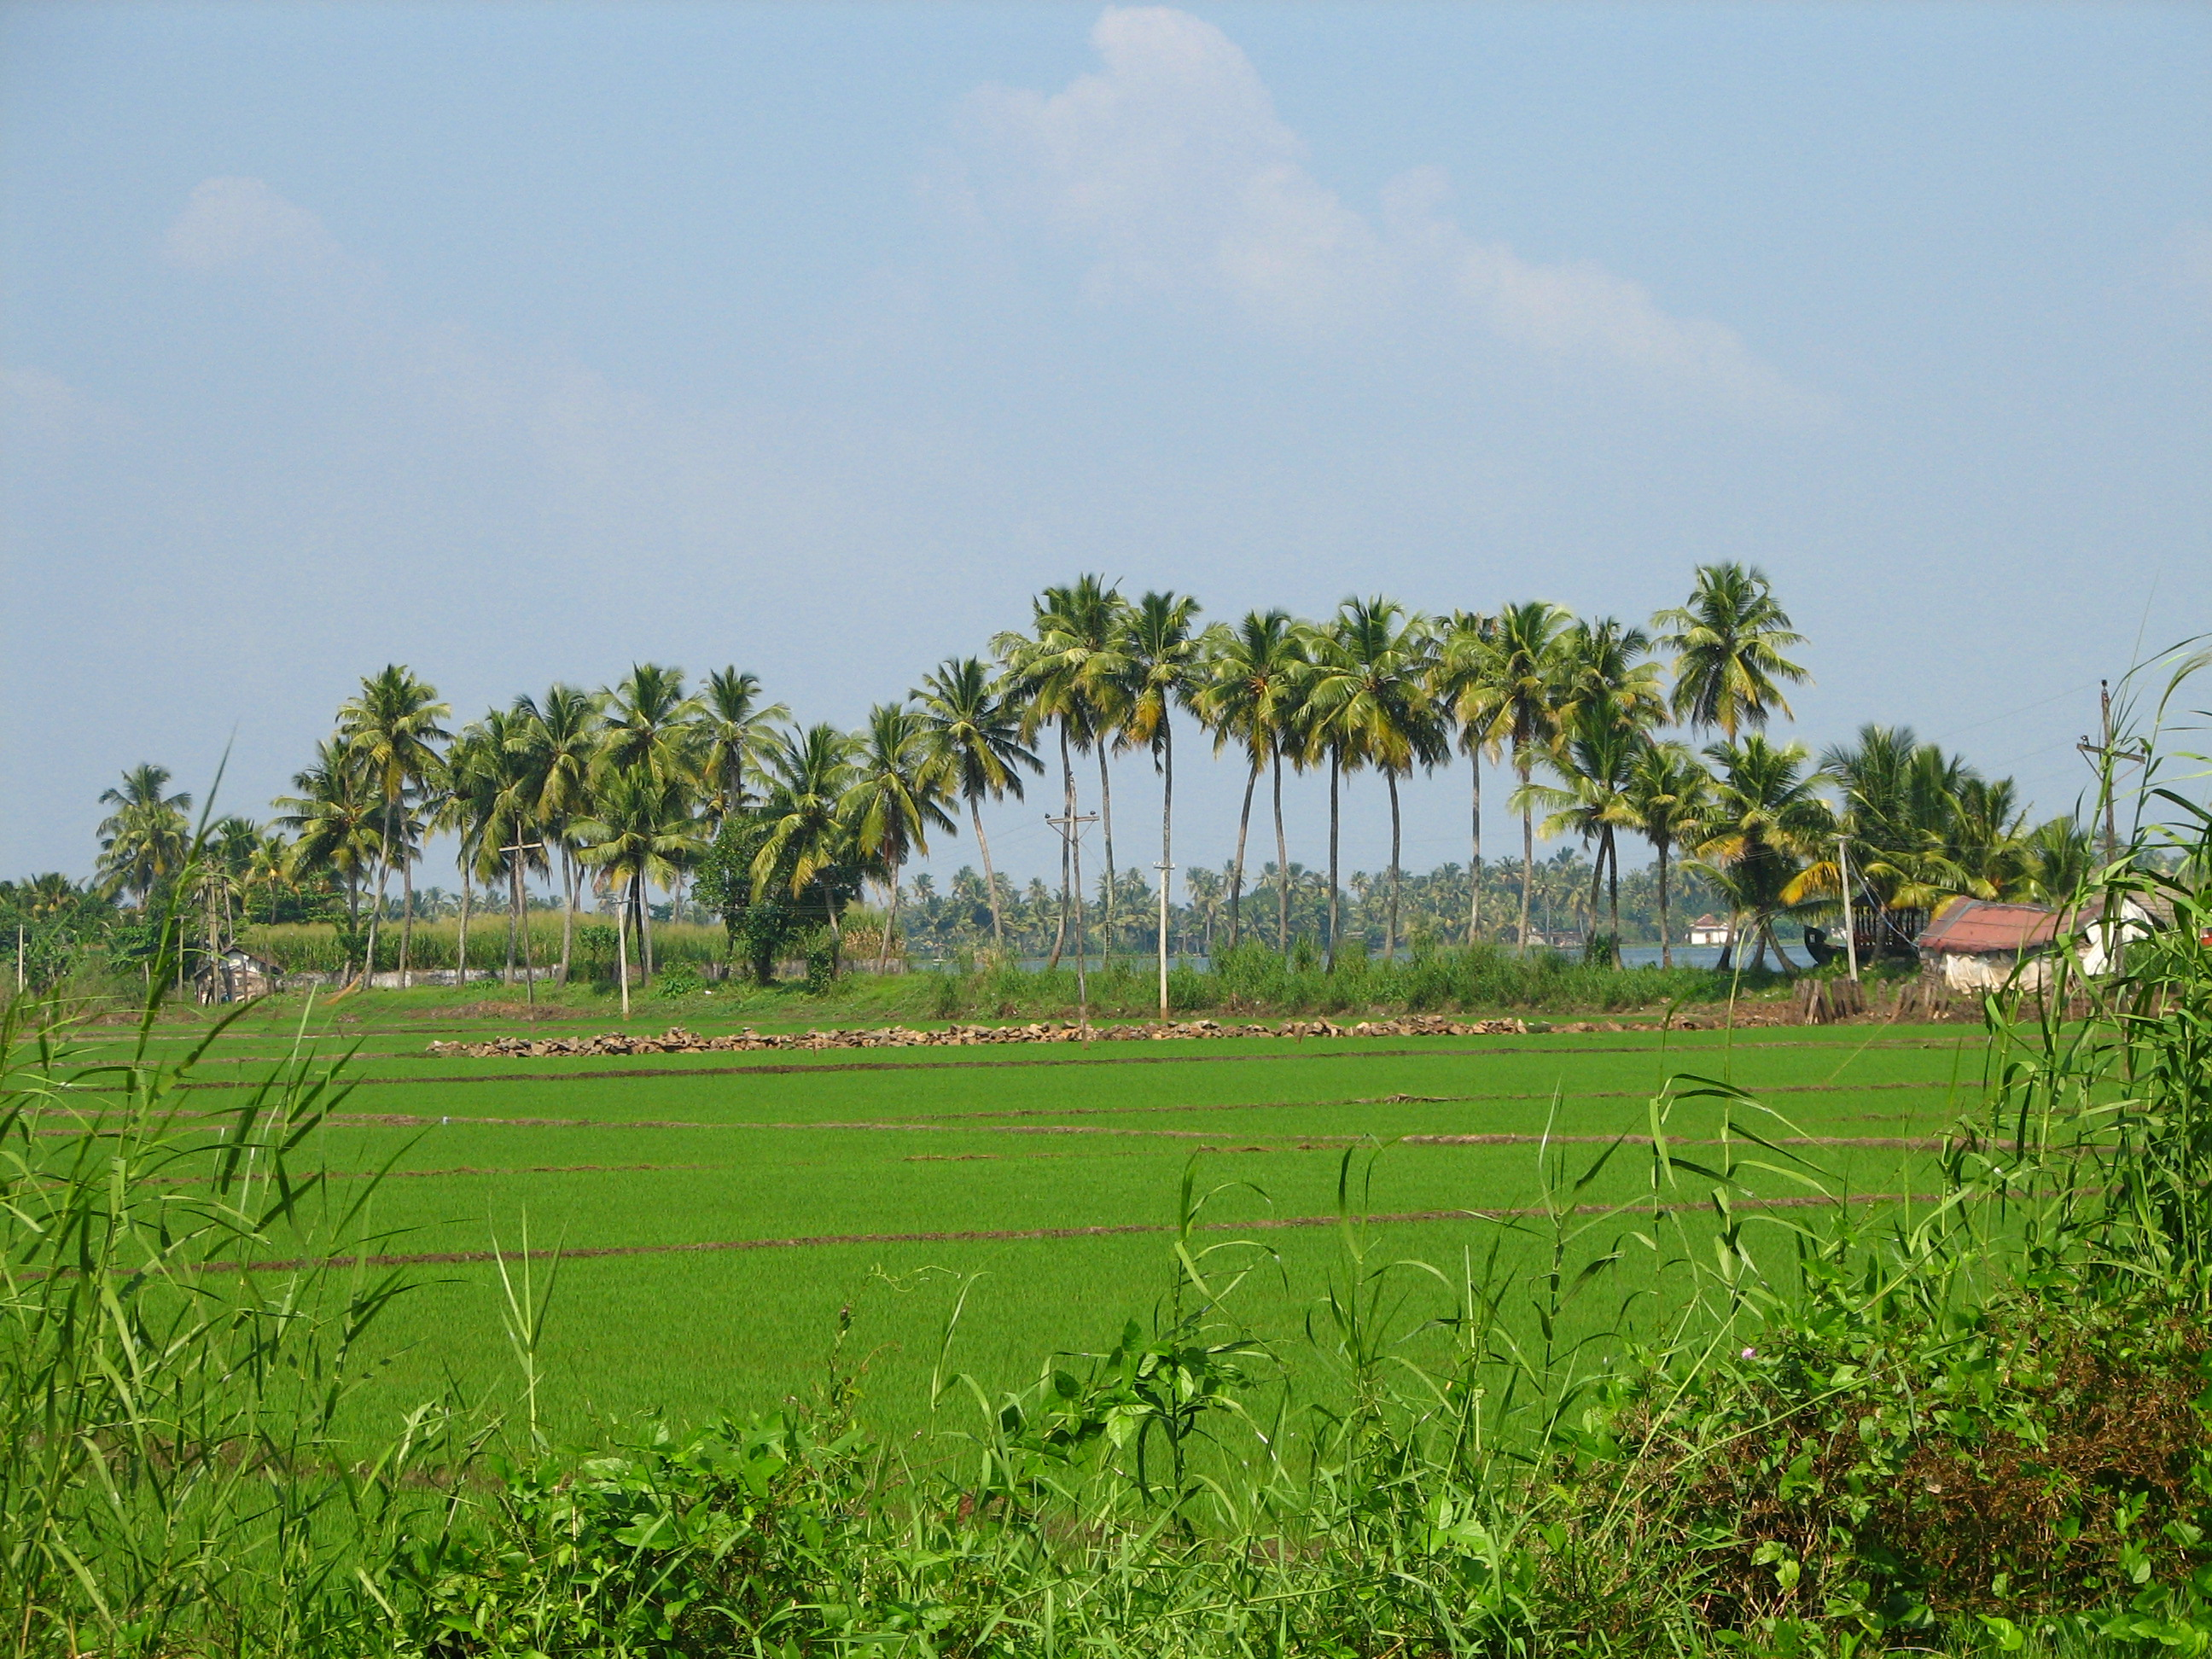 India - Kerala - 008 - paddy fields and palm trees (2068843030)